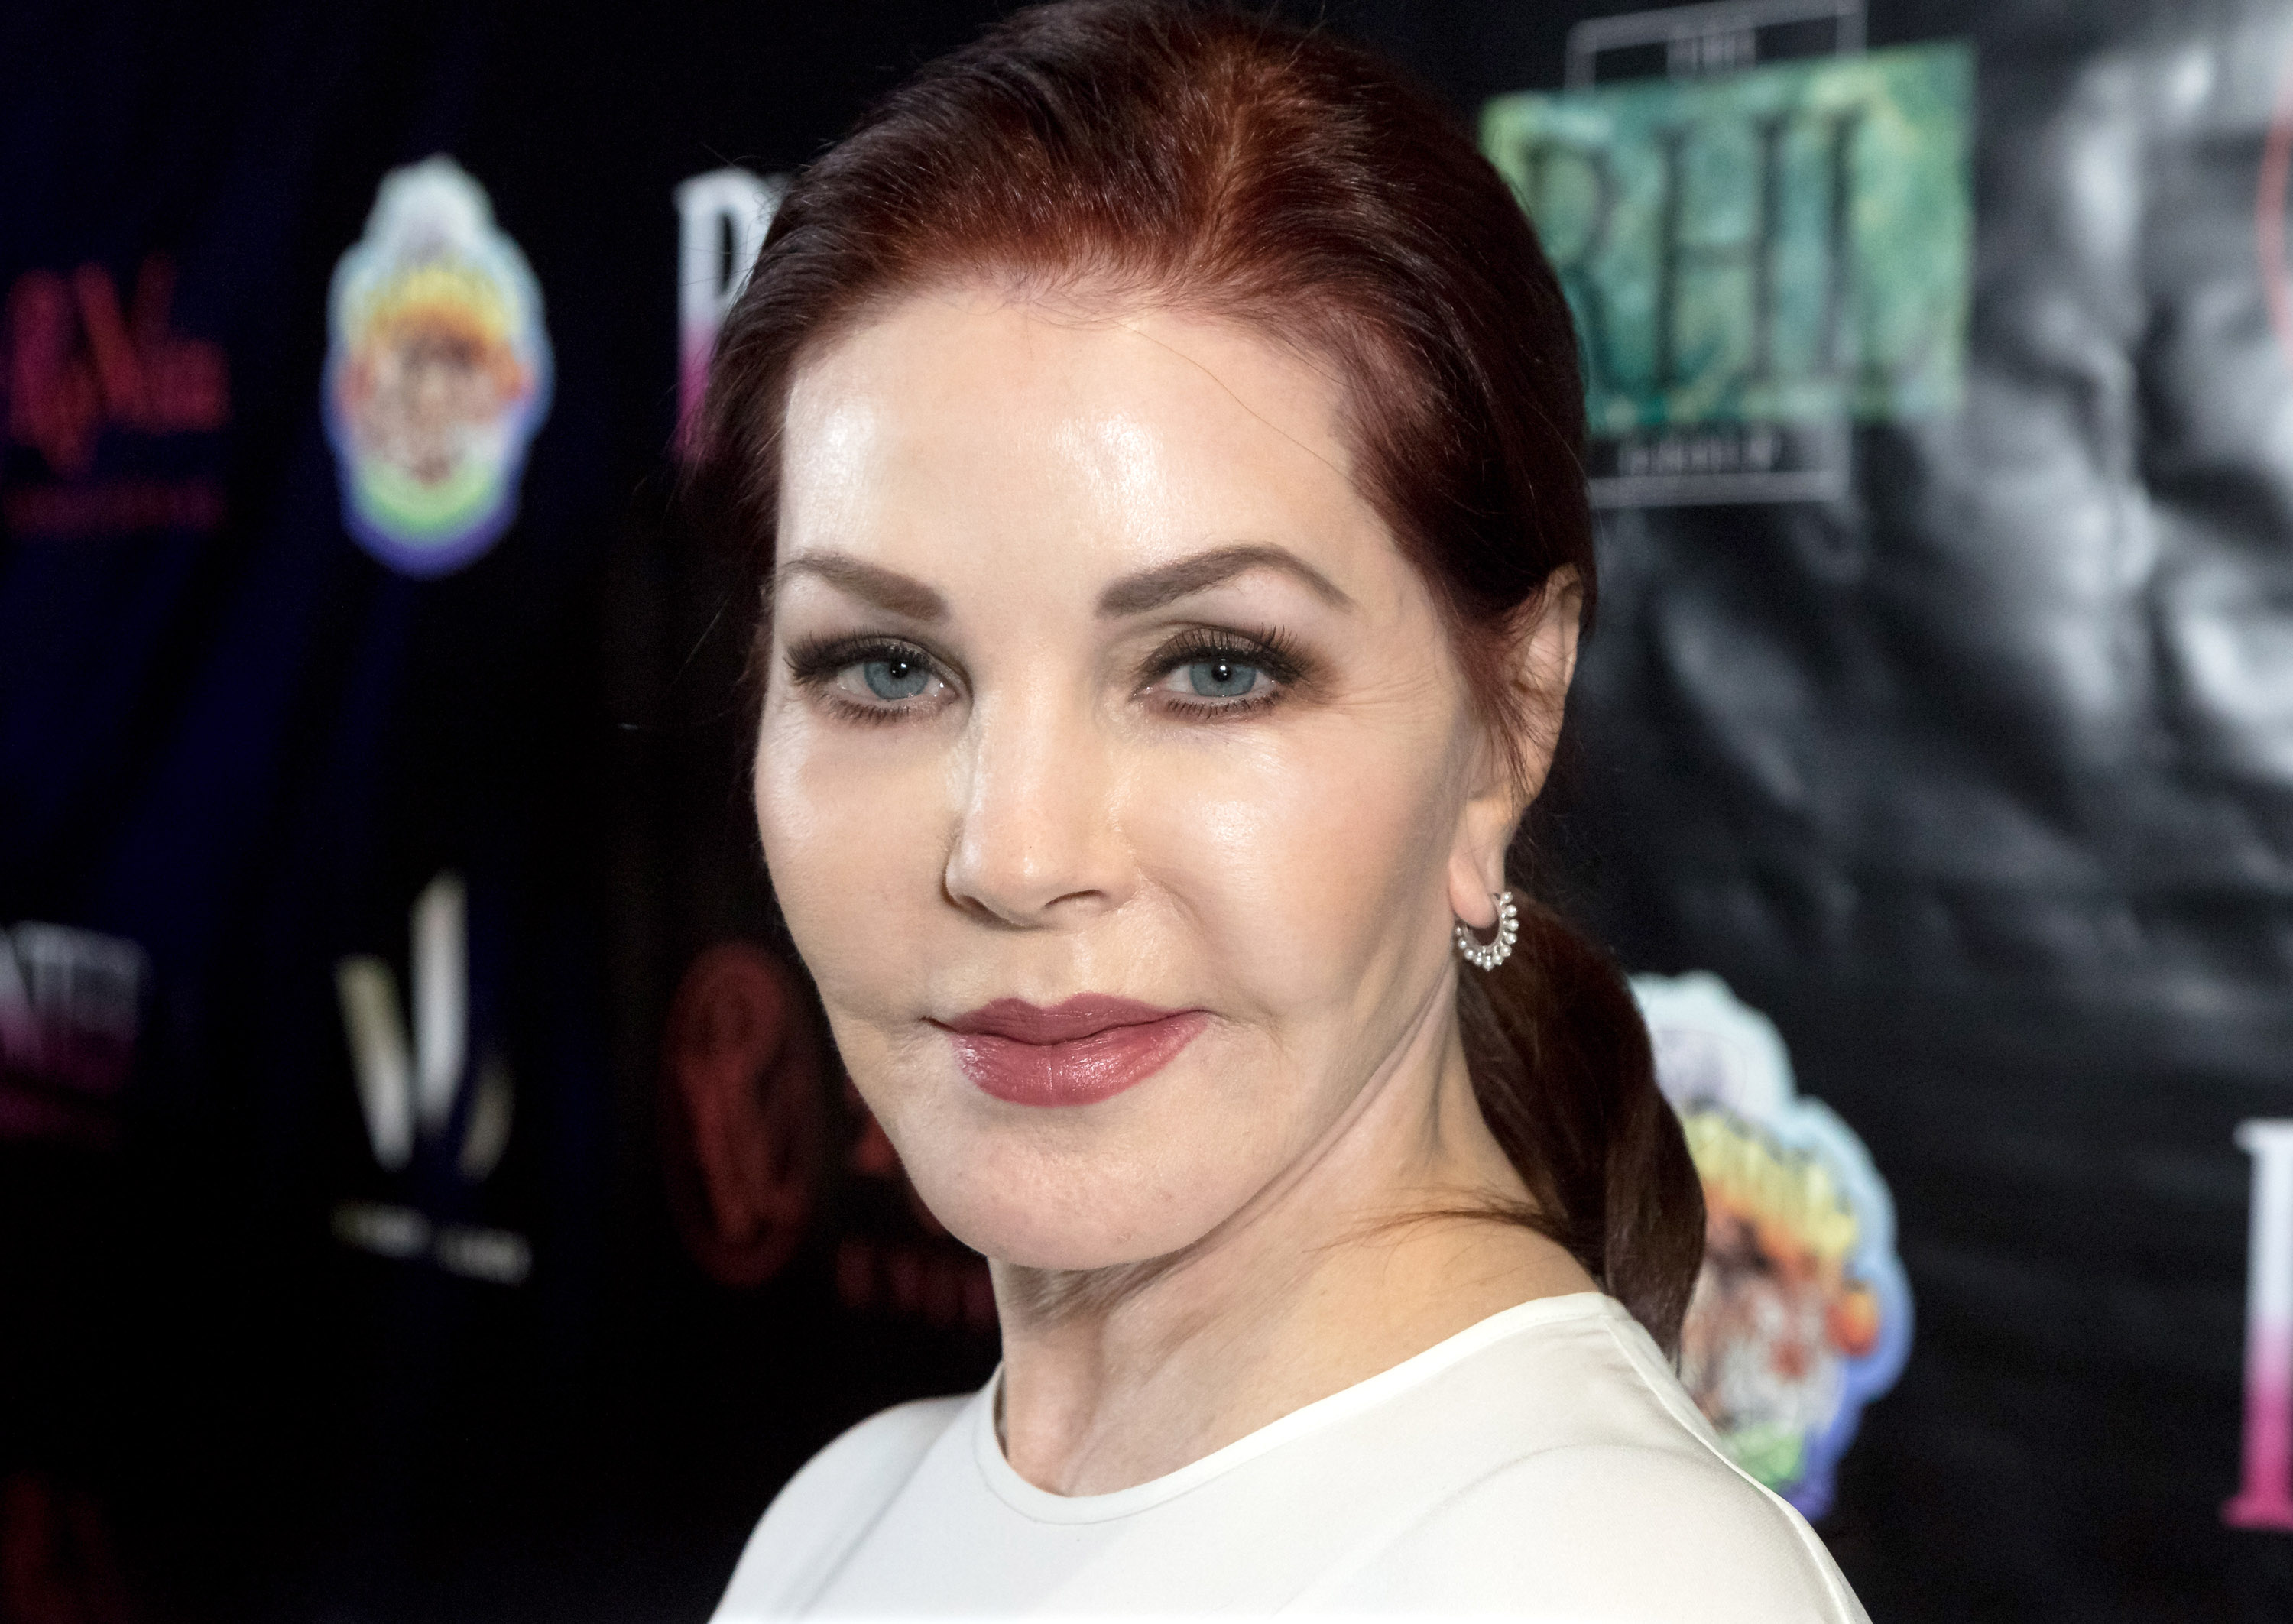 Priscilla Presley Moved To Her Current Italian Villa Inspired Home